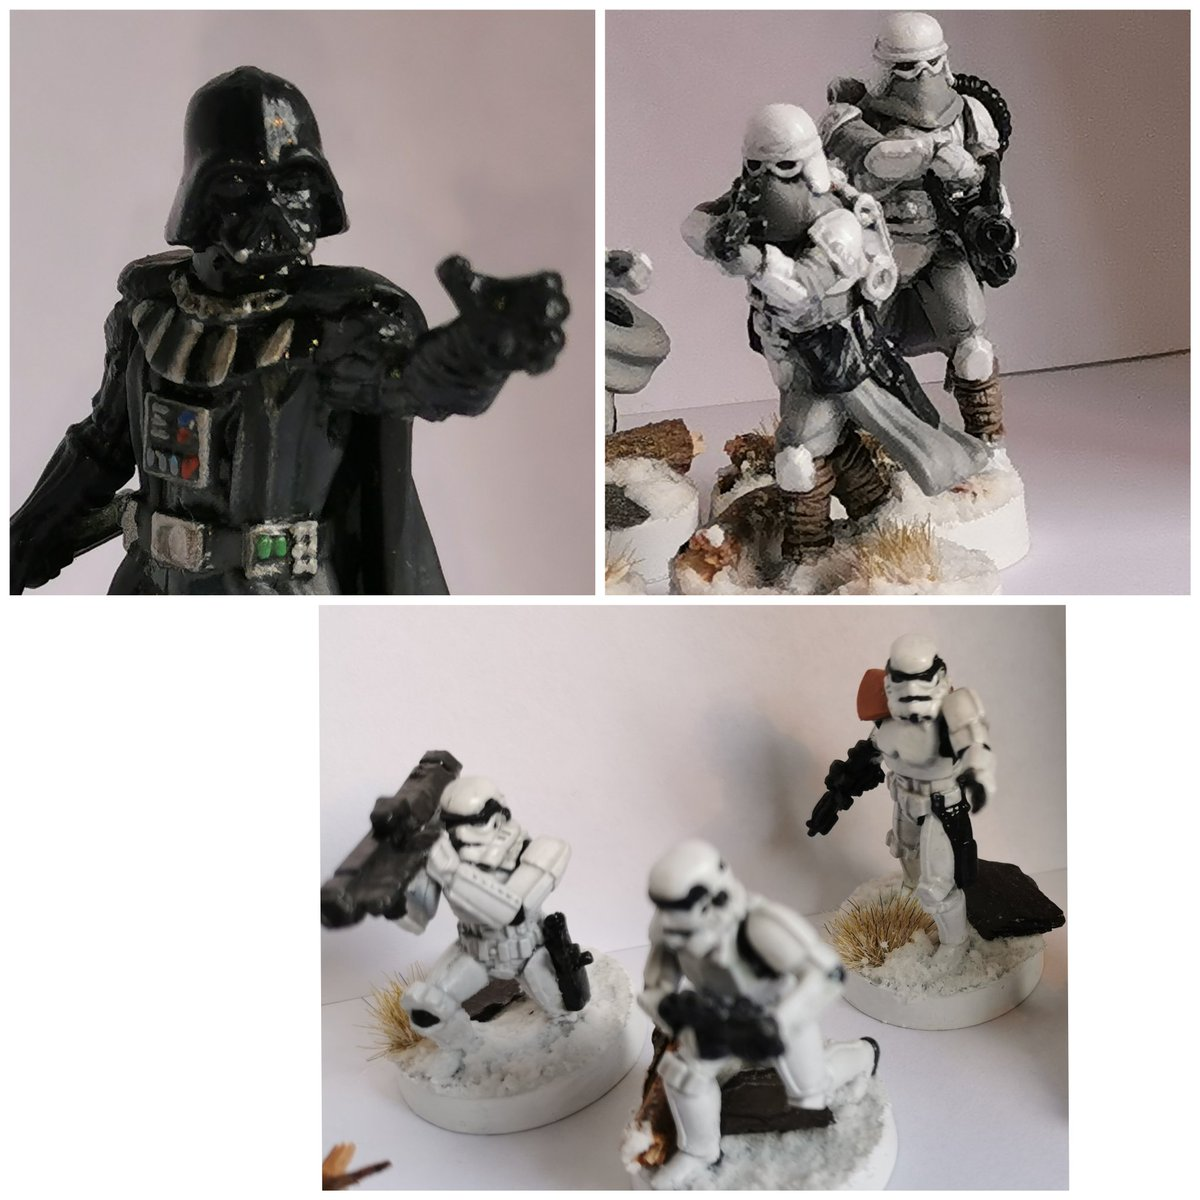 #starwarslegion #imperials #miniatures #painting #fantasyflight #fiverr #painter4hire I'm on fiverr as painter4hire https://t.co/ws8NwjtQLj